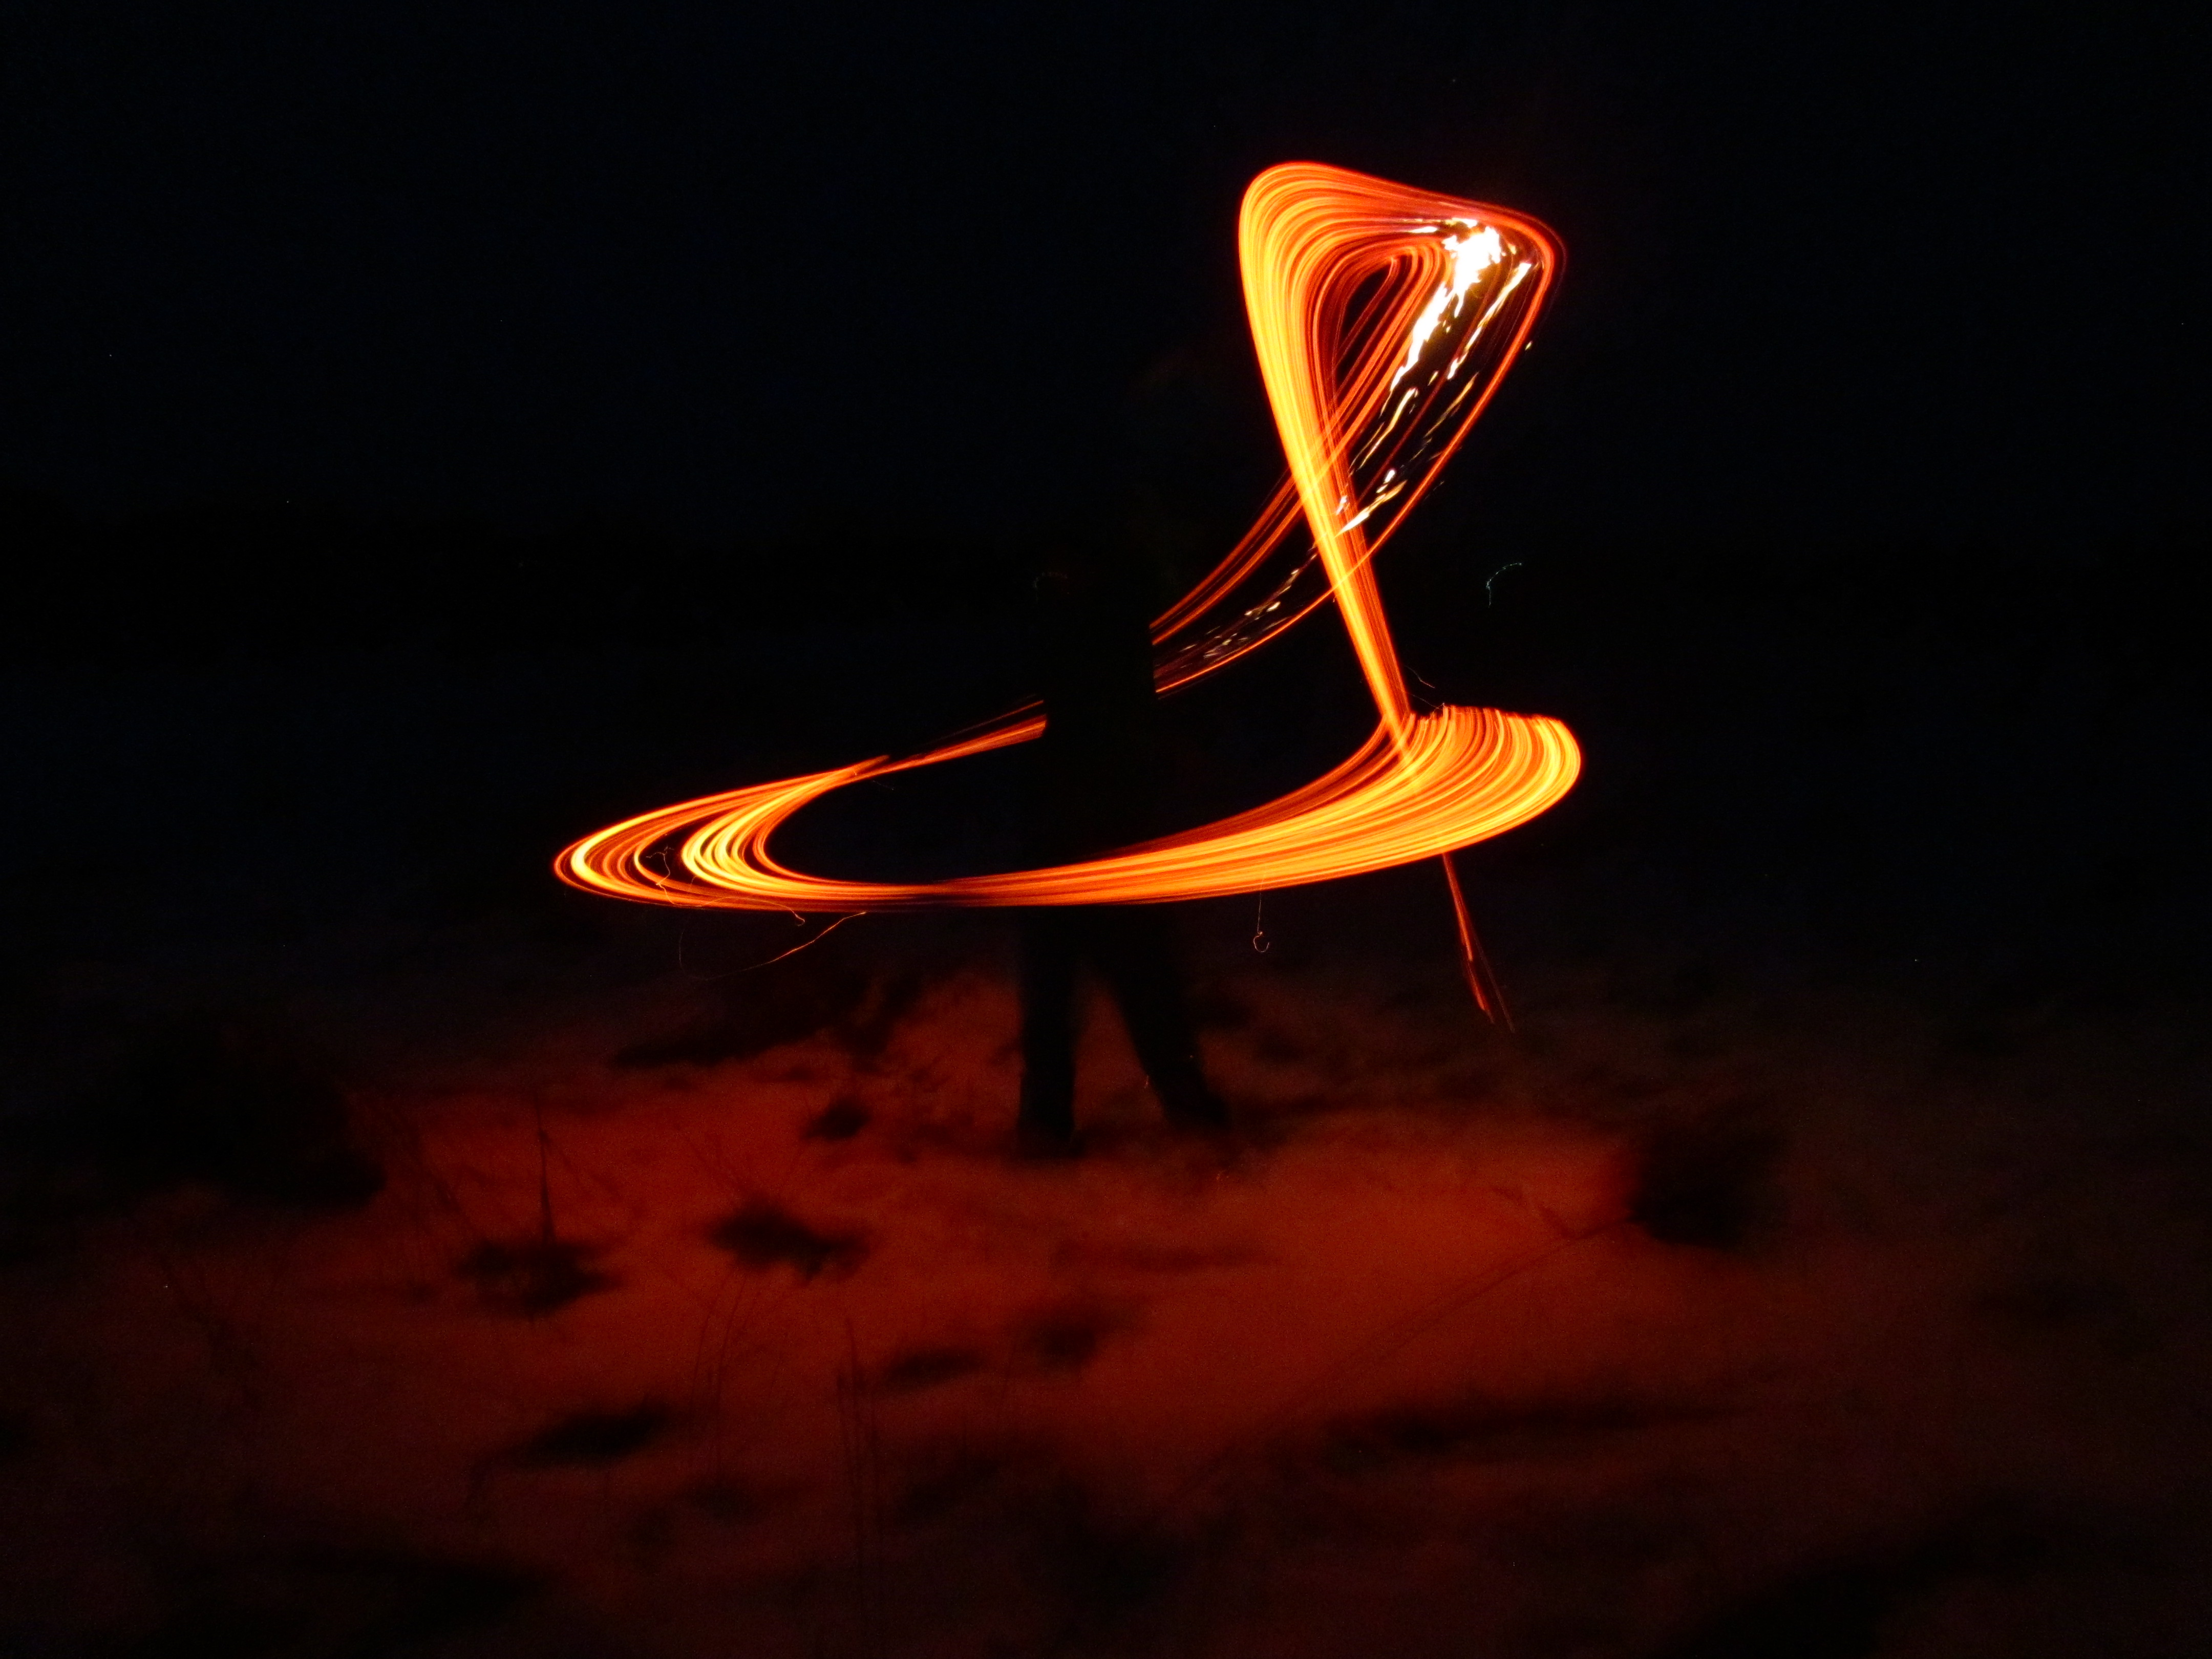 Images of Fire Juggling | 4320x3240